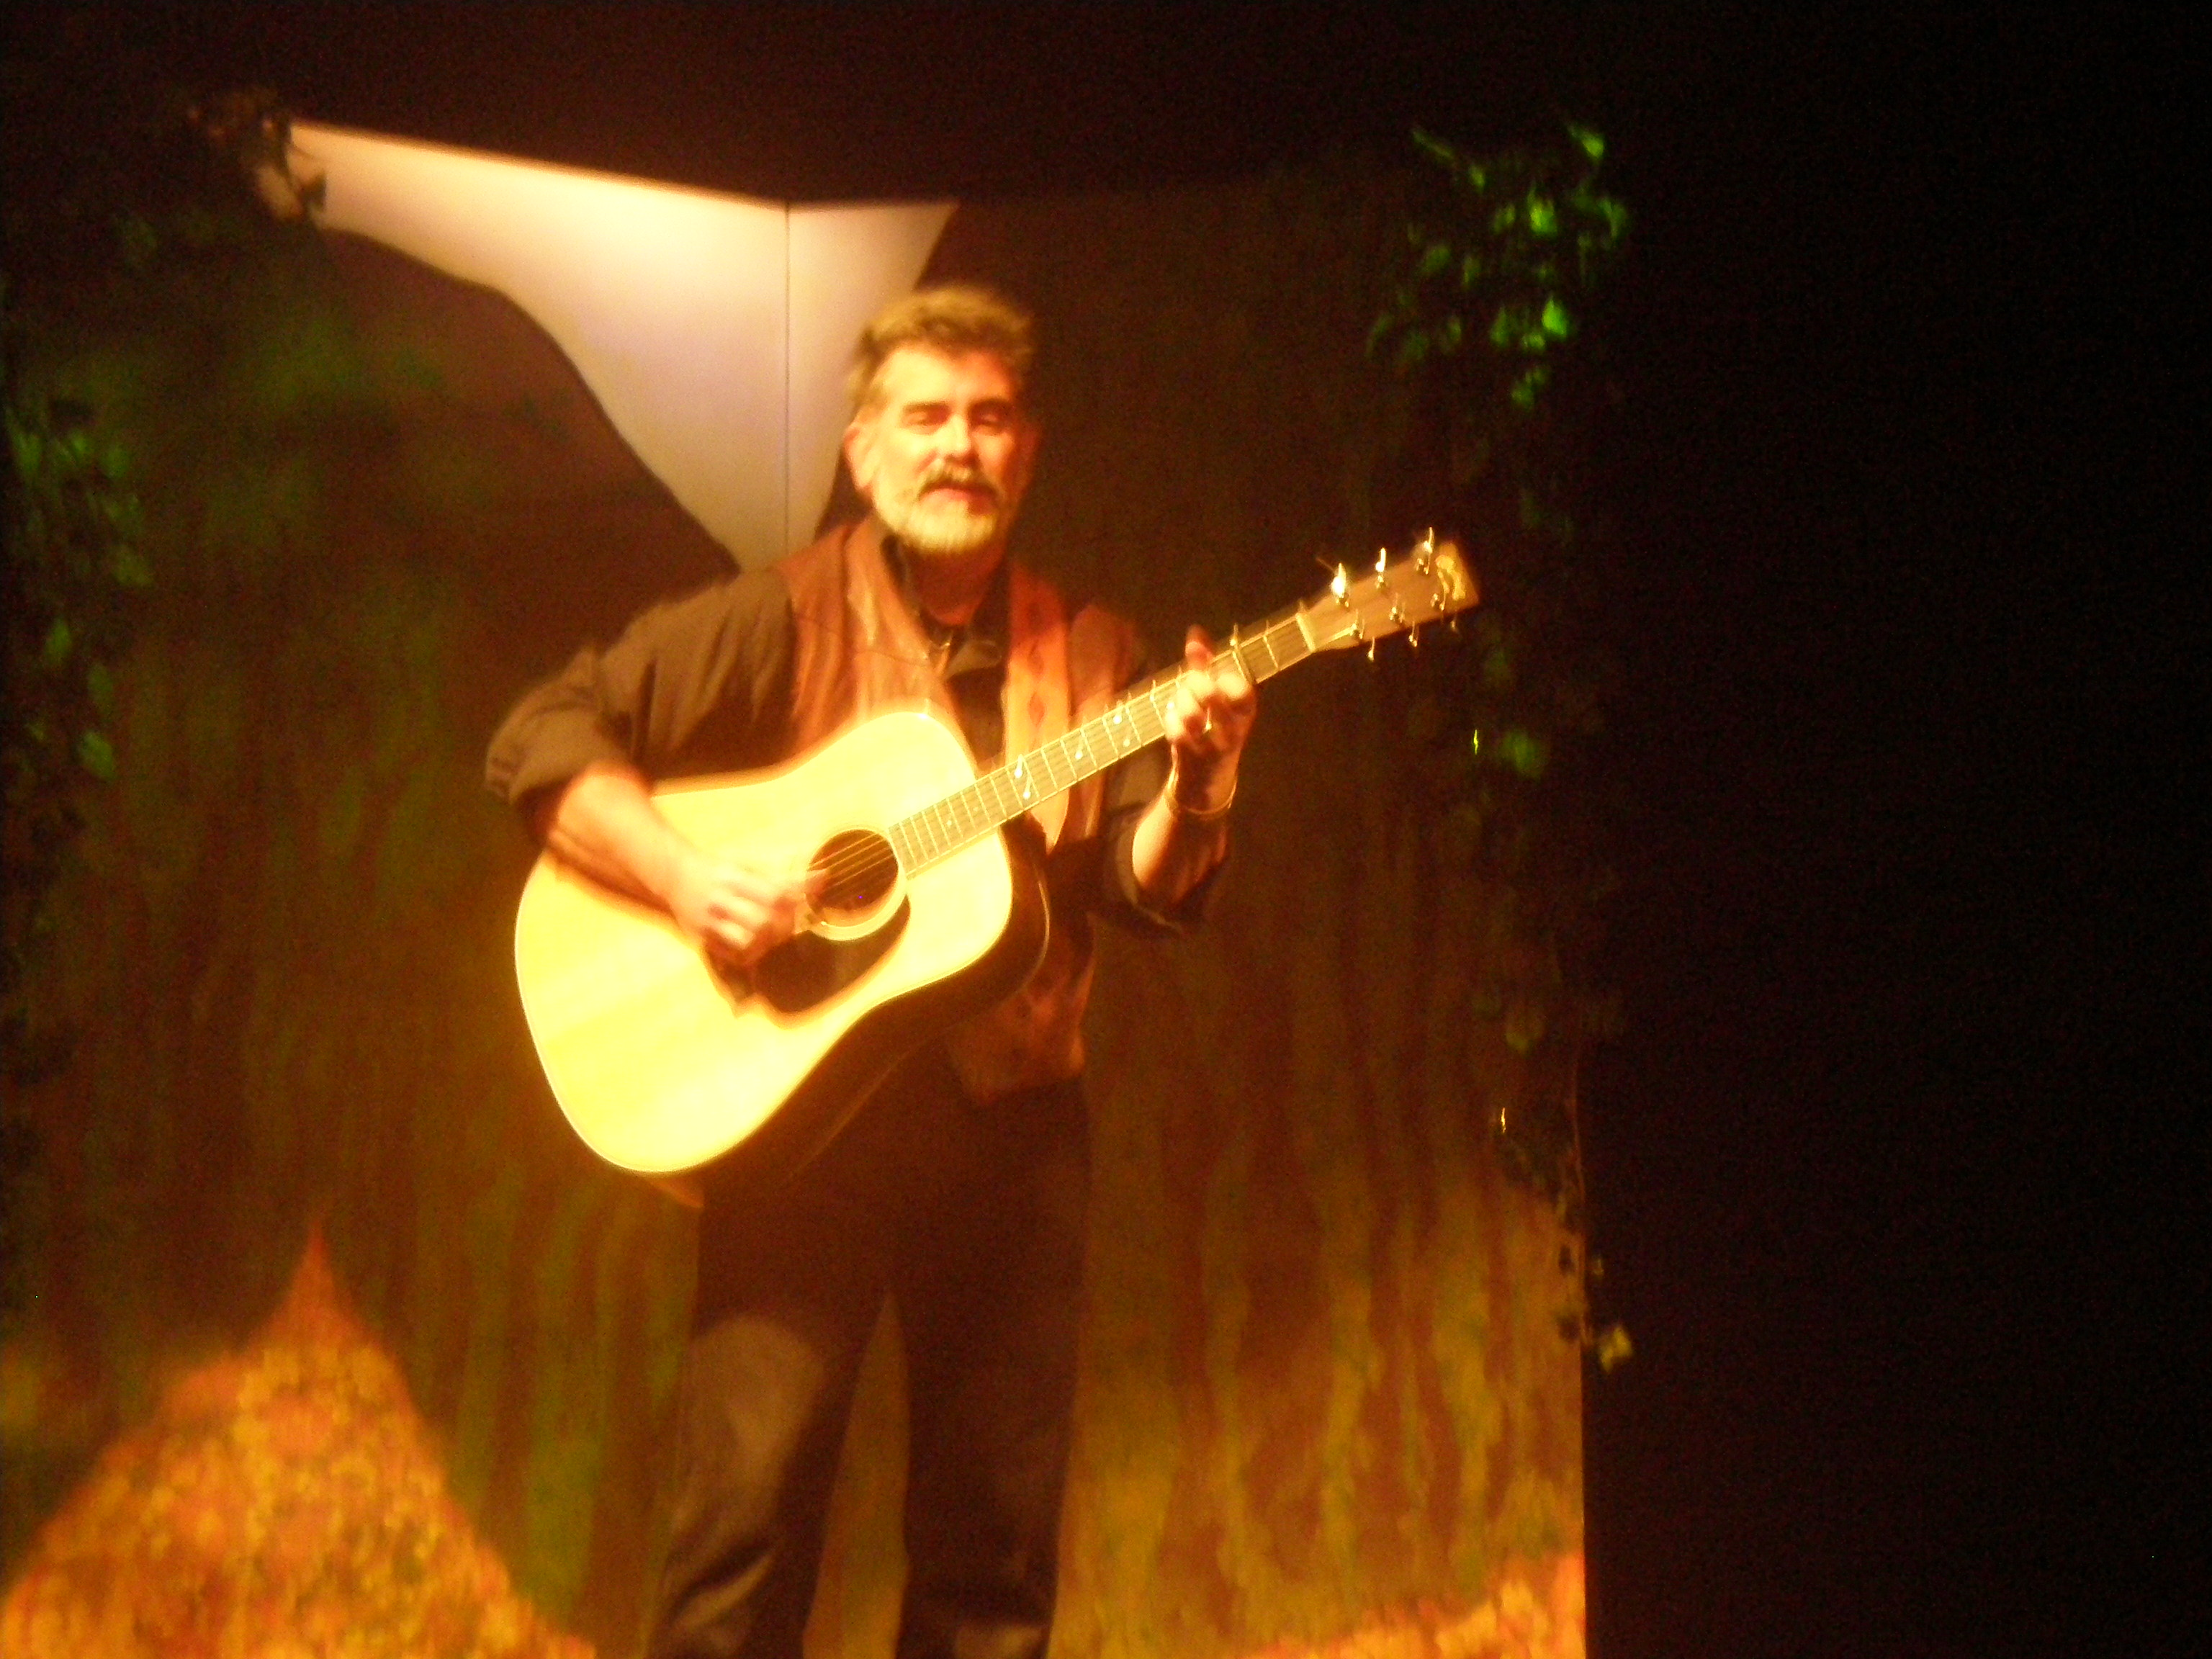 David Metcalfe at Garden of Awen